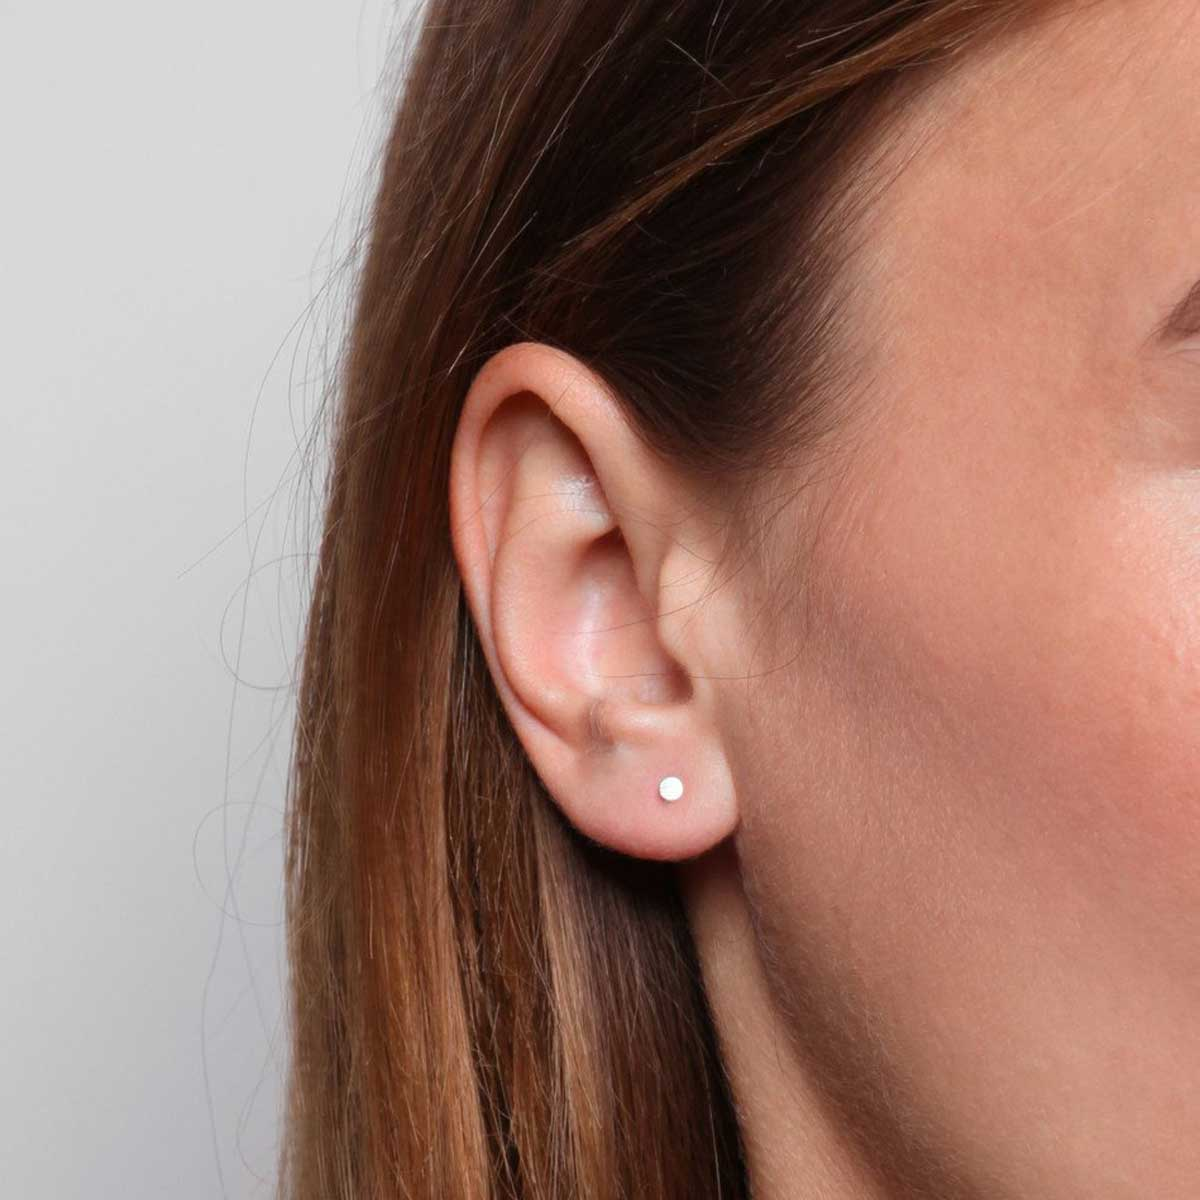 tiny circle stud earrings